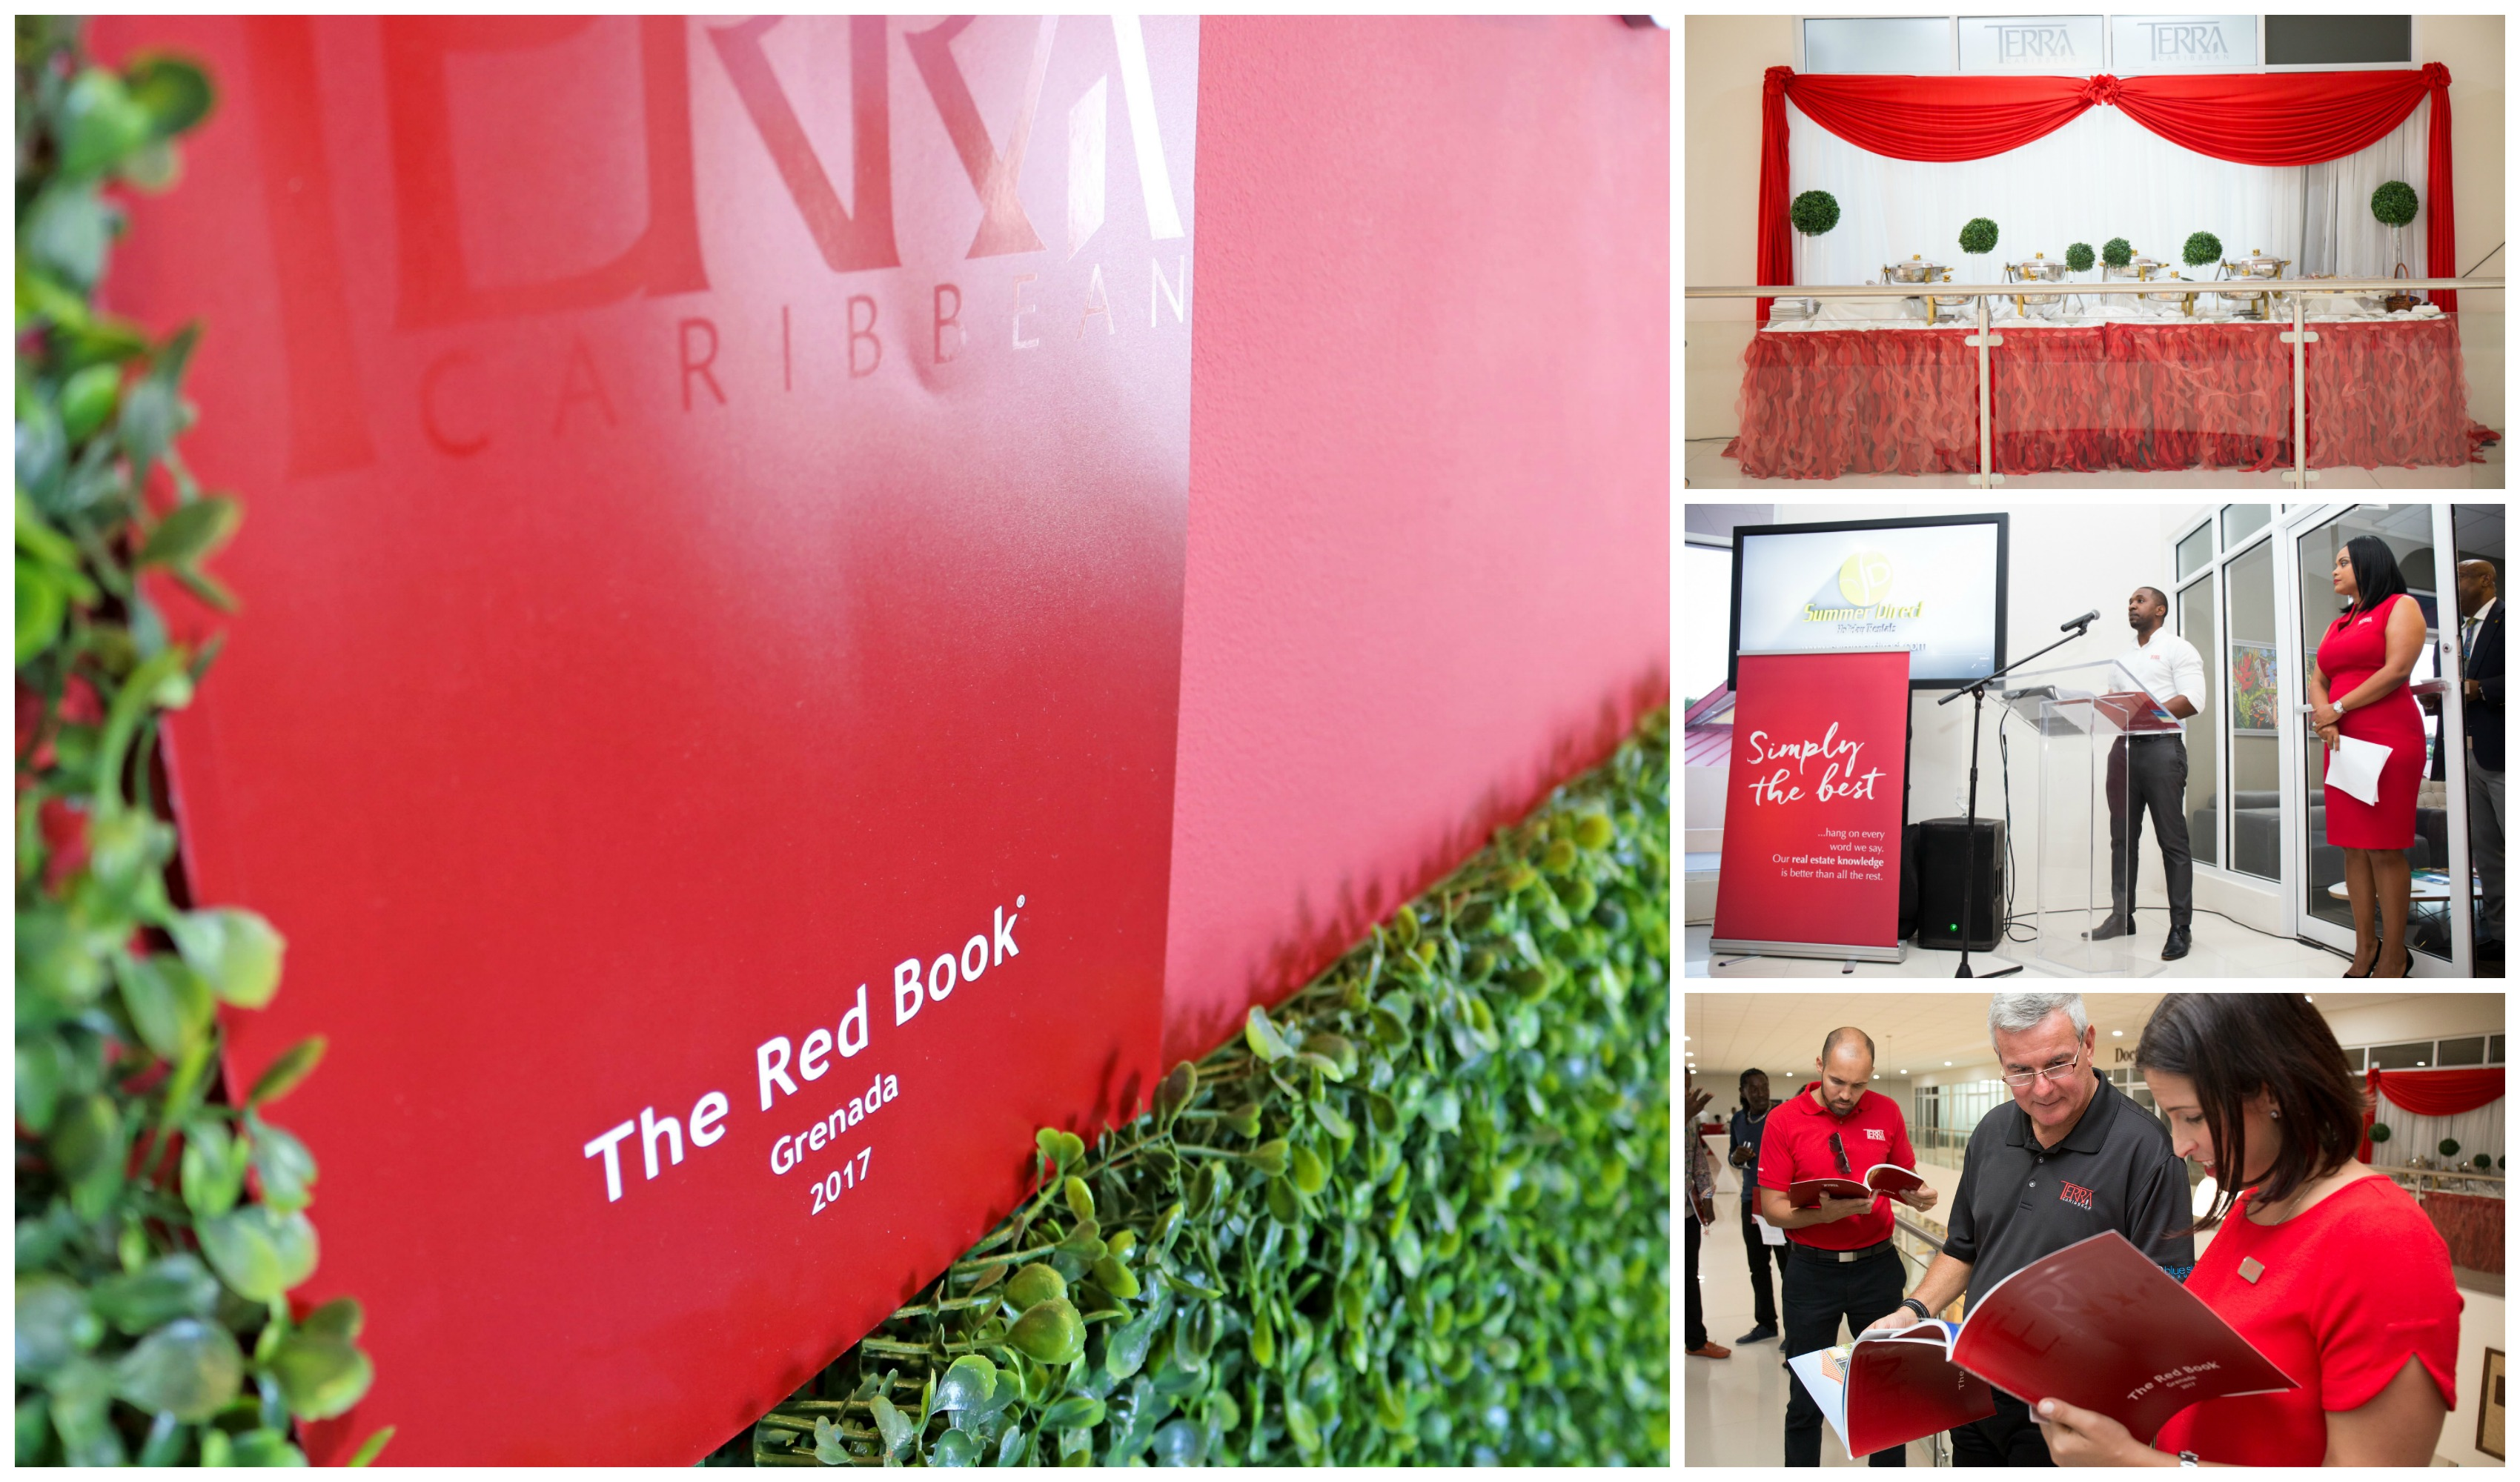 The Red Book Launch